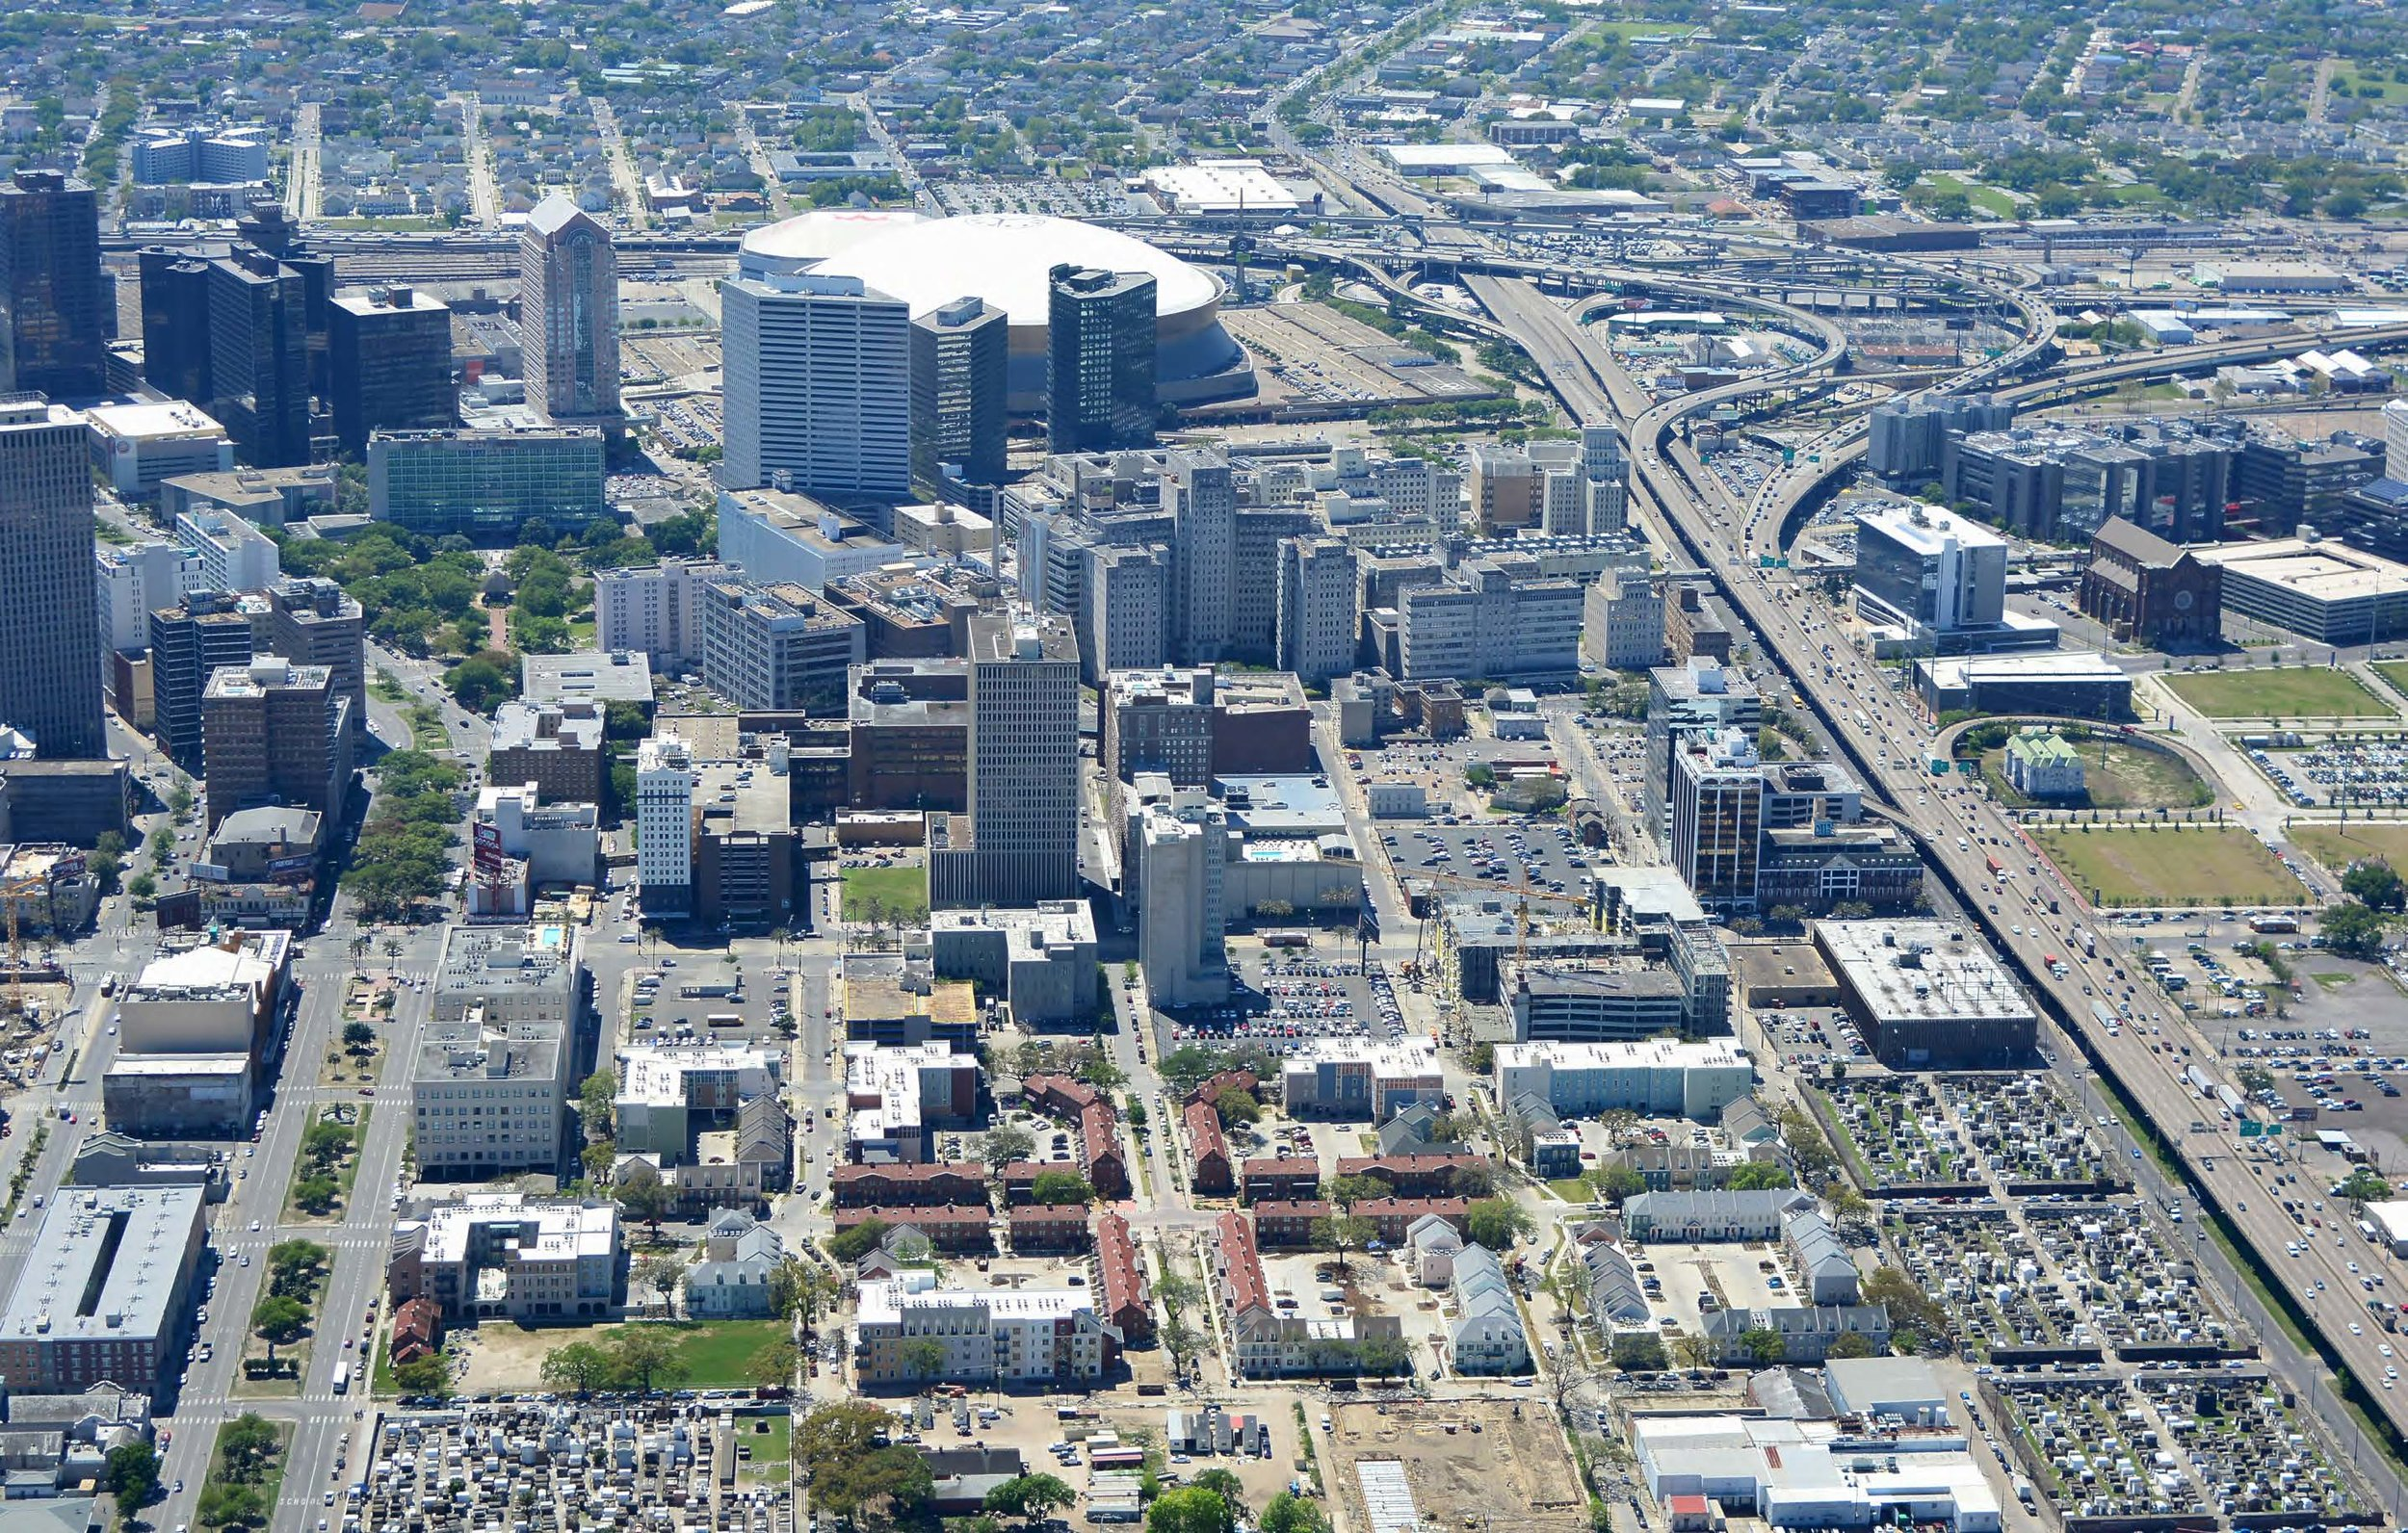 Iberville Aerial Photo-March 2018-7.jpg